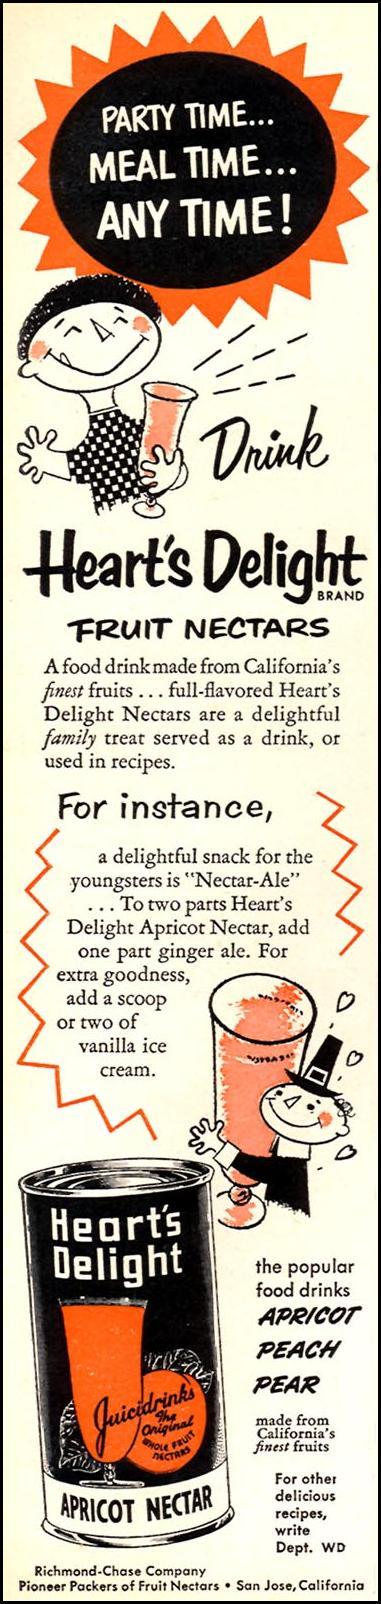 HEART'S DELIGHT FRUIT NECTARS WOMAN'S DAY 02/01/1954 p. 140